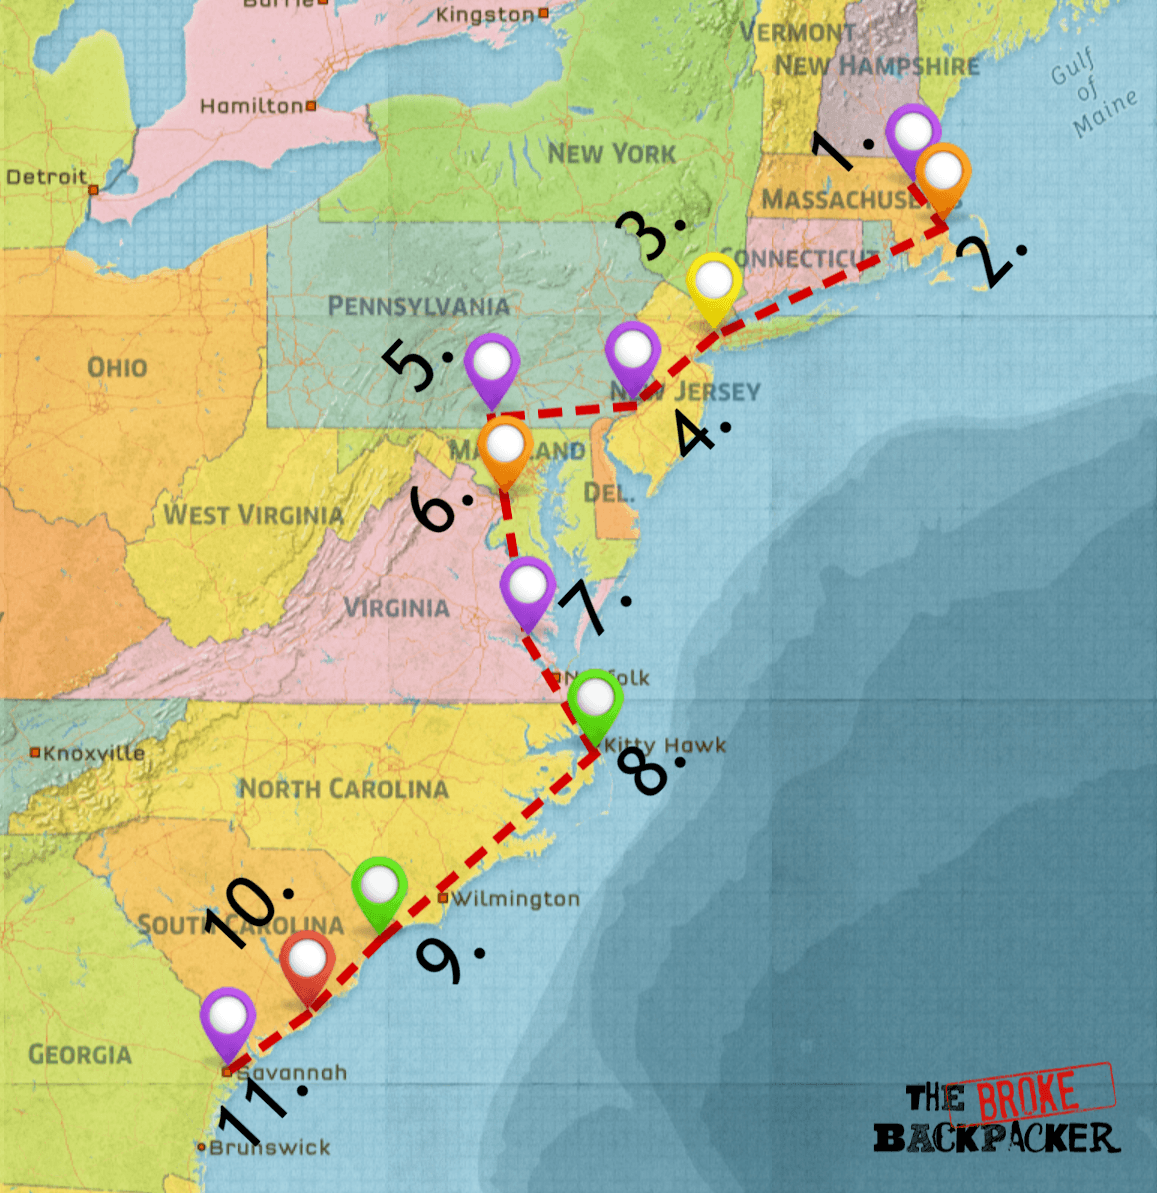 east coast road trip map - driving itinerary #2